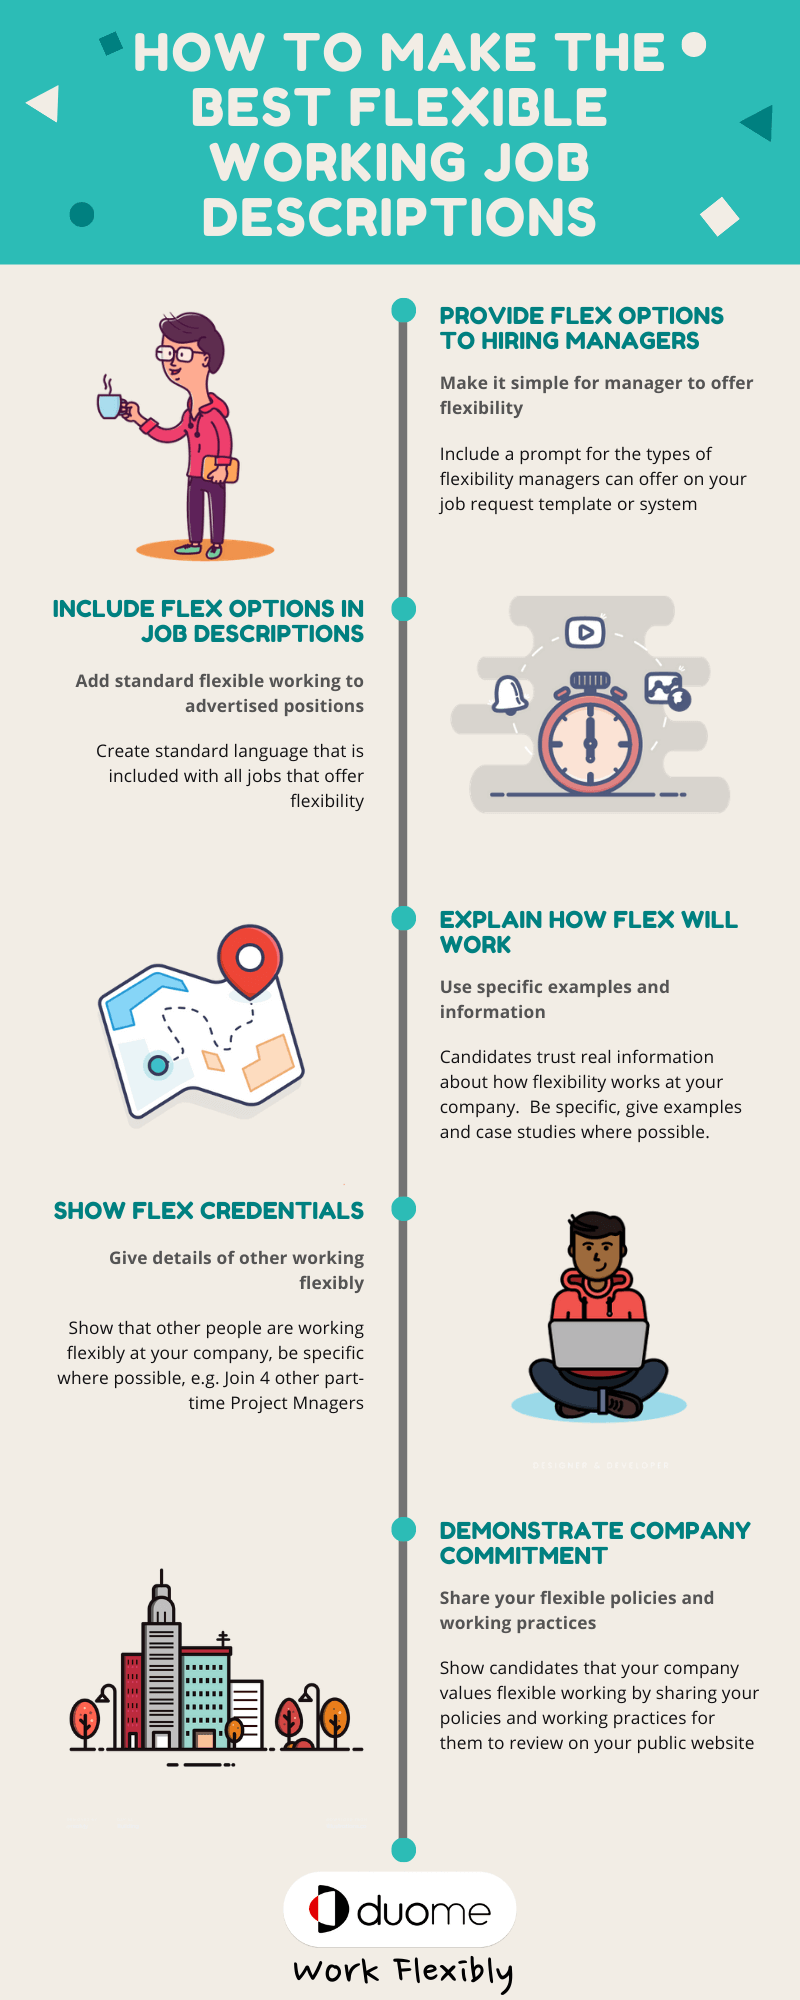 how to make the best flexible working job descriptions infographic